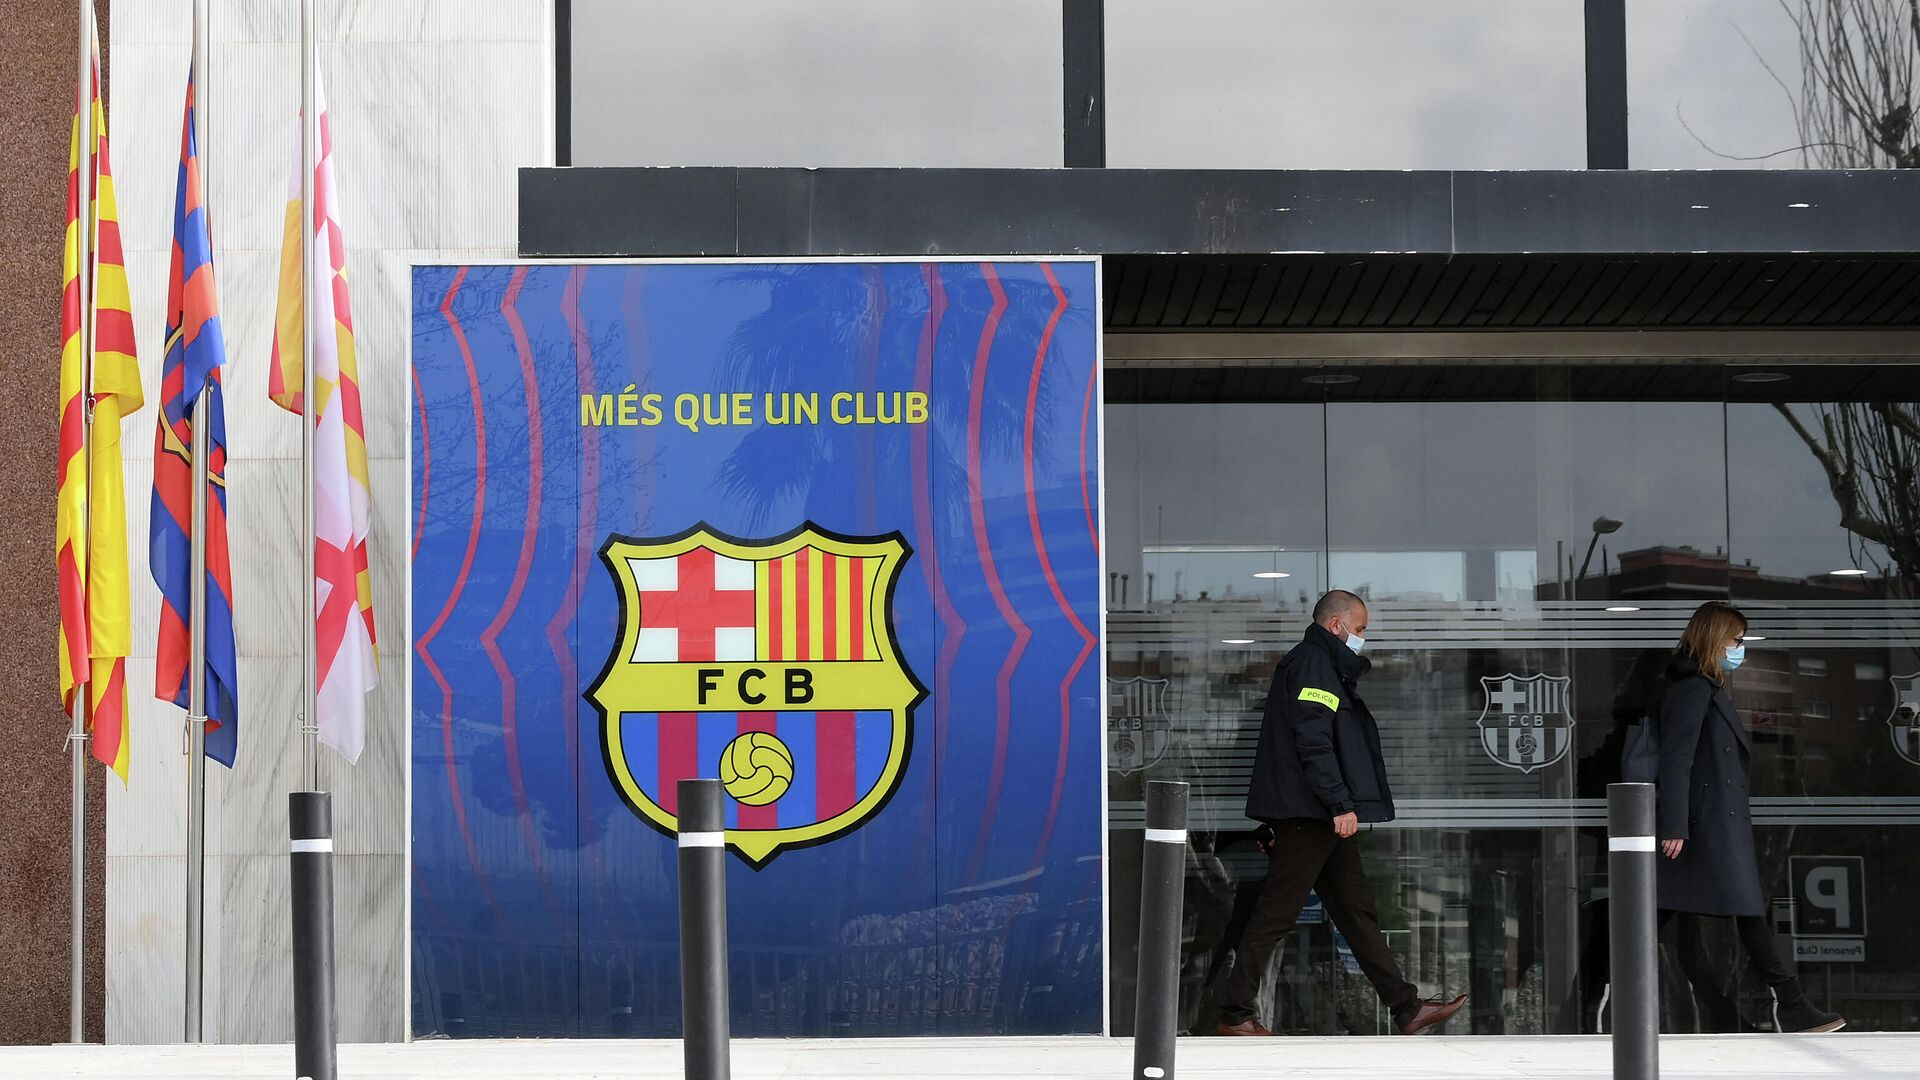 Deputy Chief of the Criminal Investigation Division of Catalan regional police forces Mossos d'Esquadra, Marta Fernandez (R) leaves the offices of Barcelona Football Club on March 01, 2021 in Barcelona during a police operation inside the building. -  (Photo by LLUIS GENE / AFP) - РИА Новости, 1920, 01.03.2021